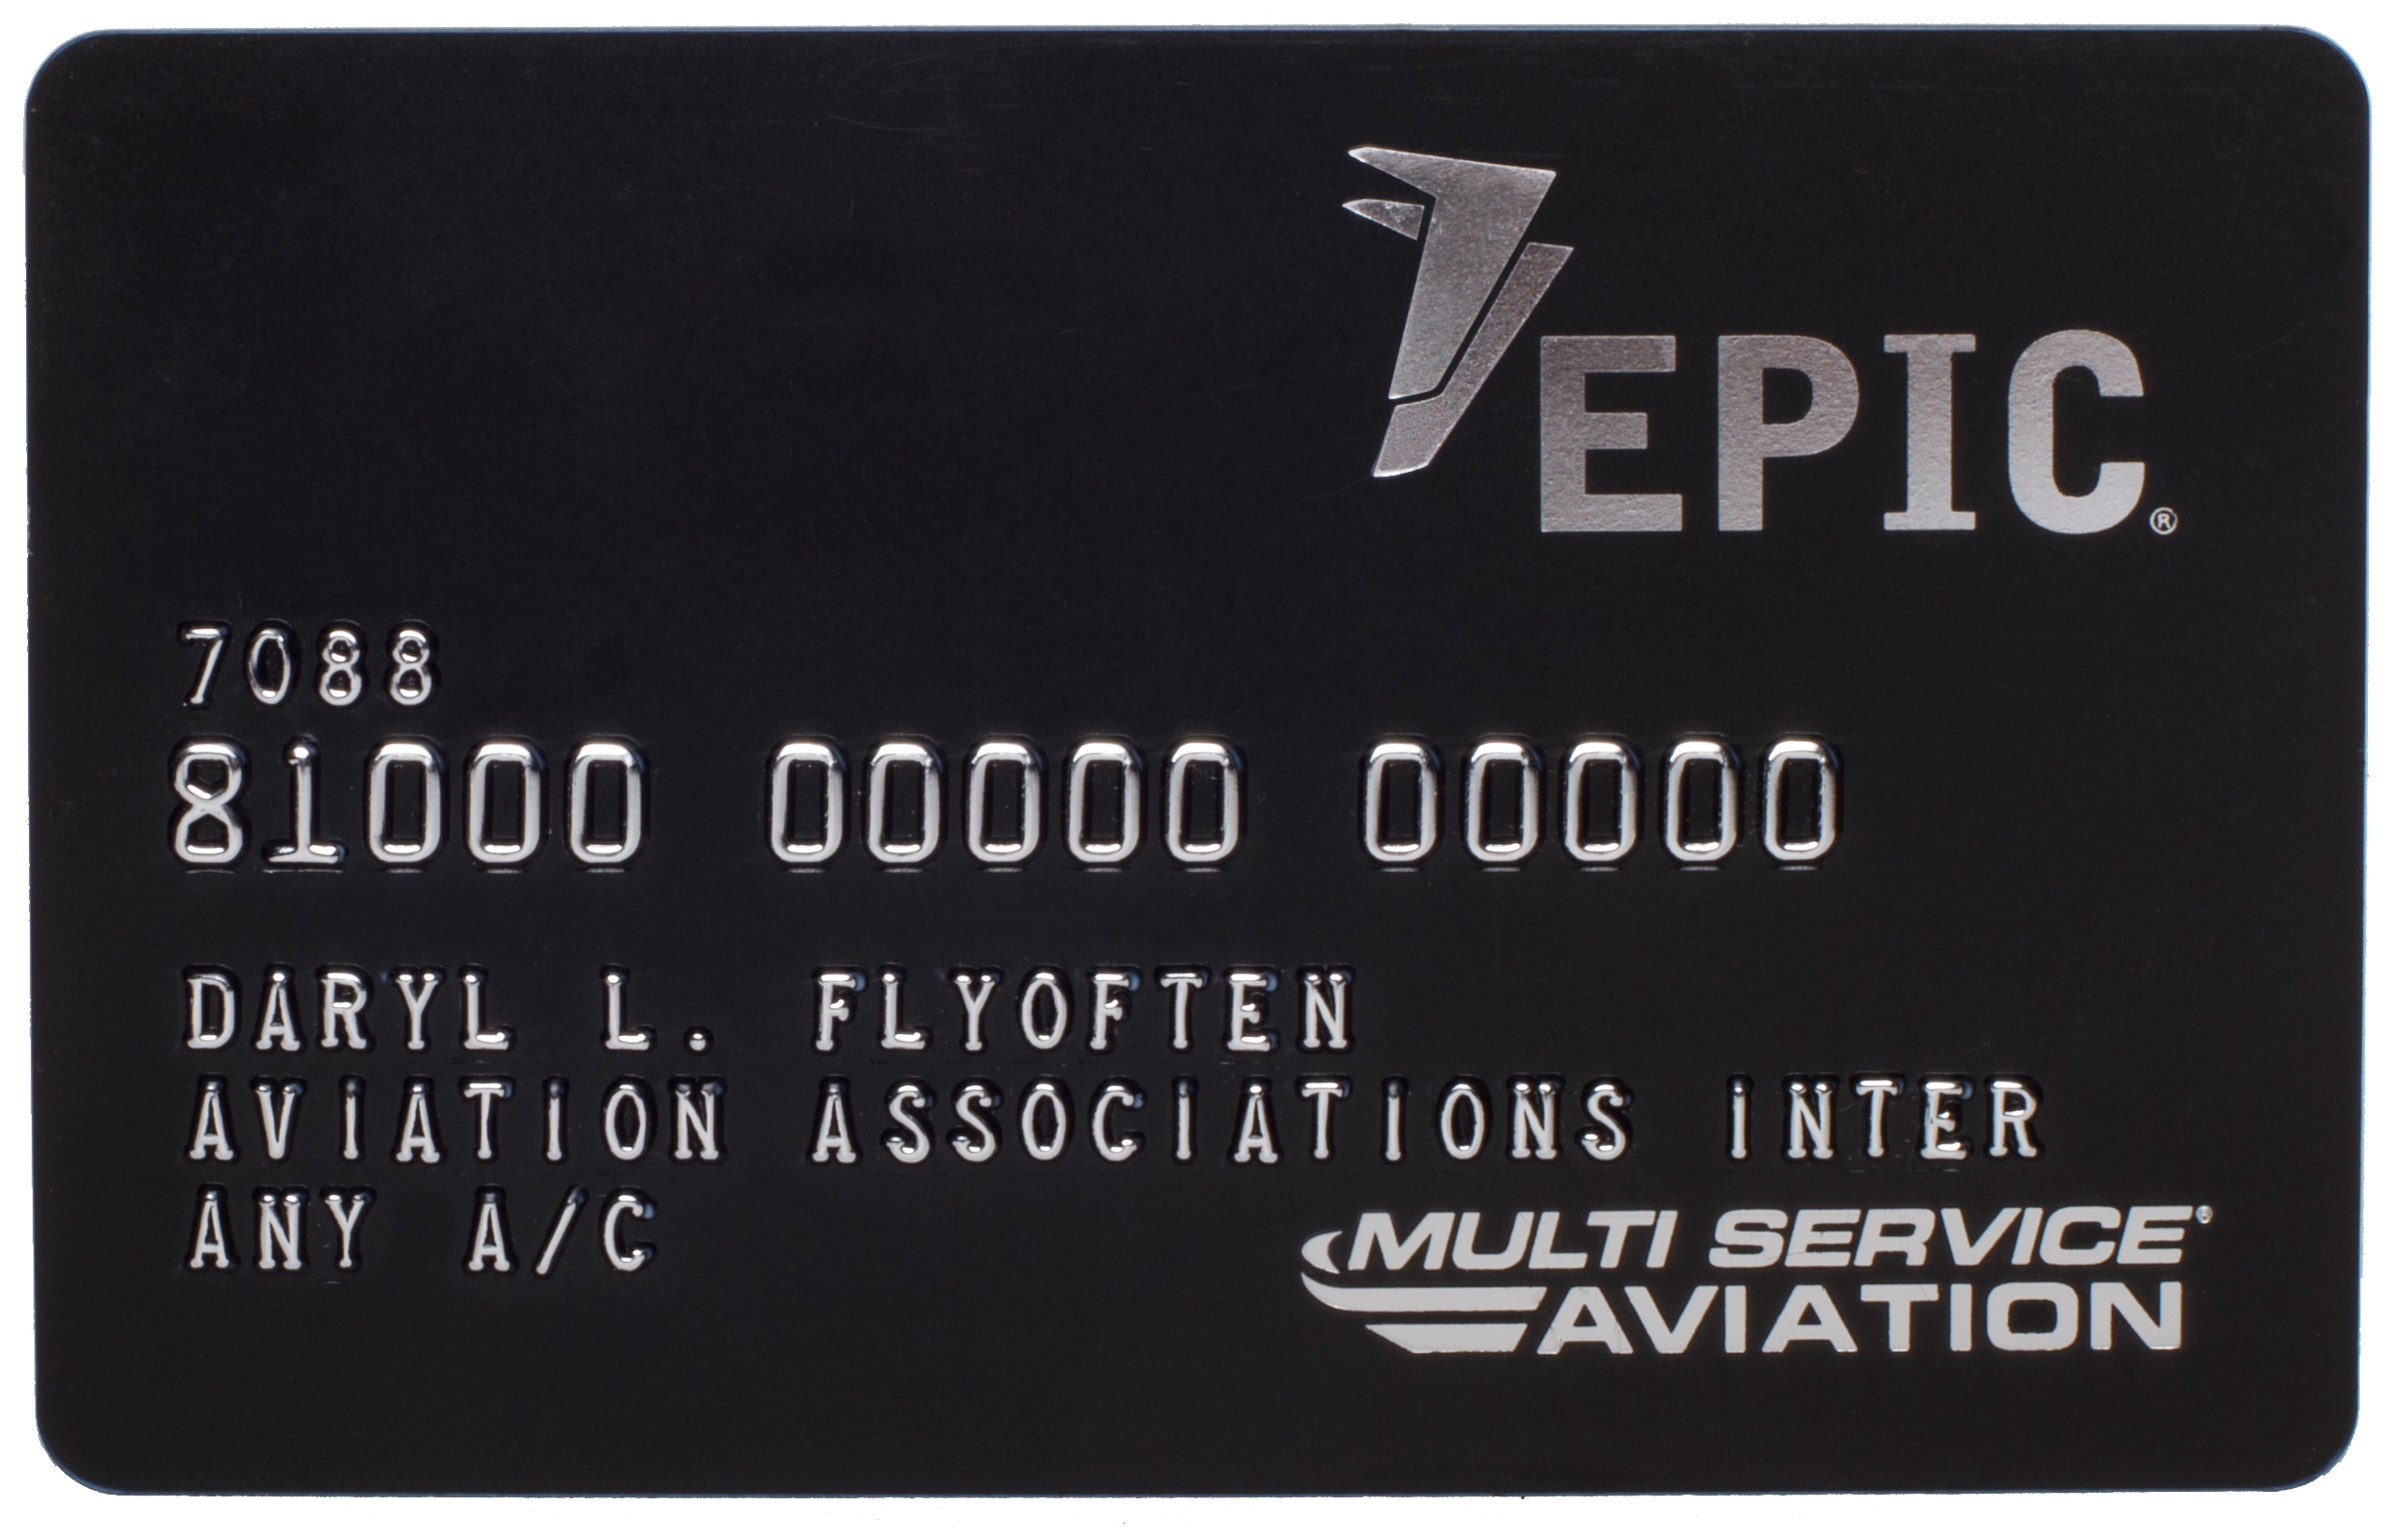 EPIC Card - accepted at thousands of locations worldwide